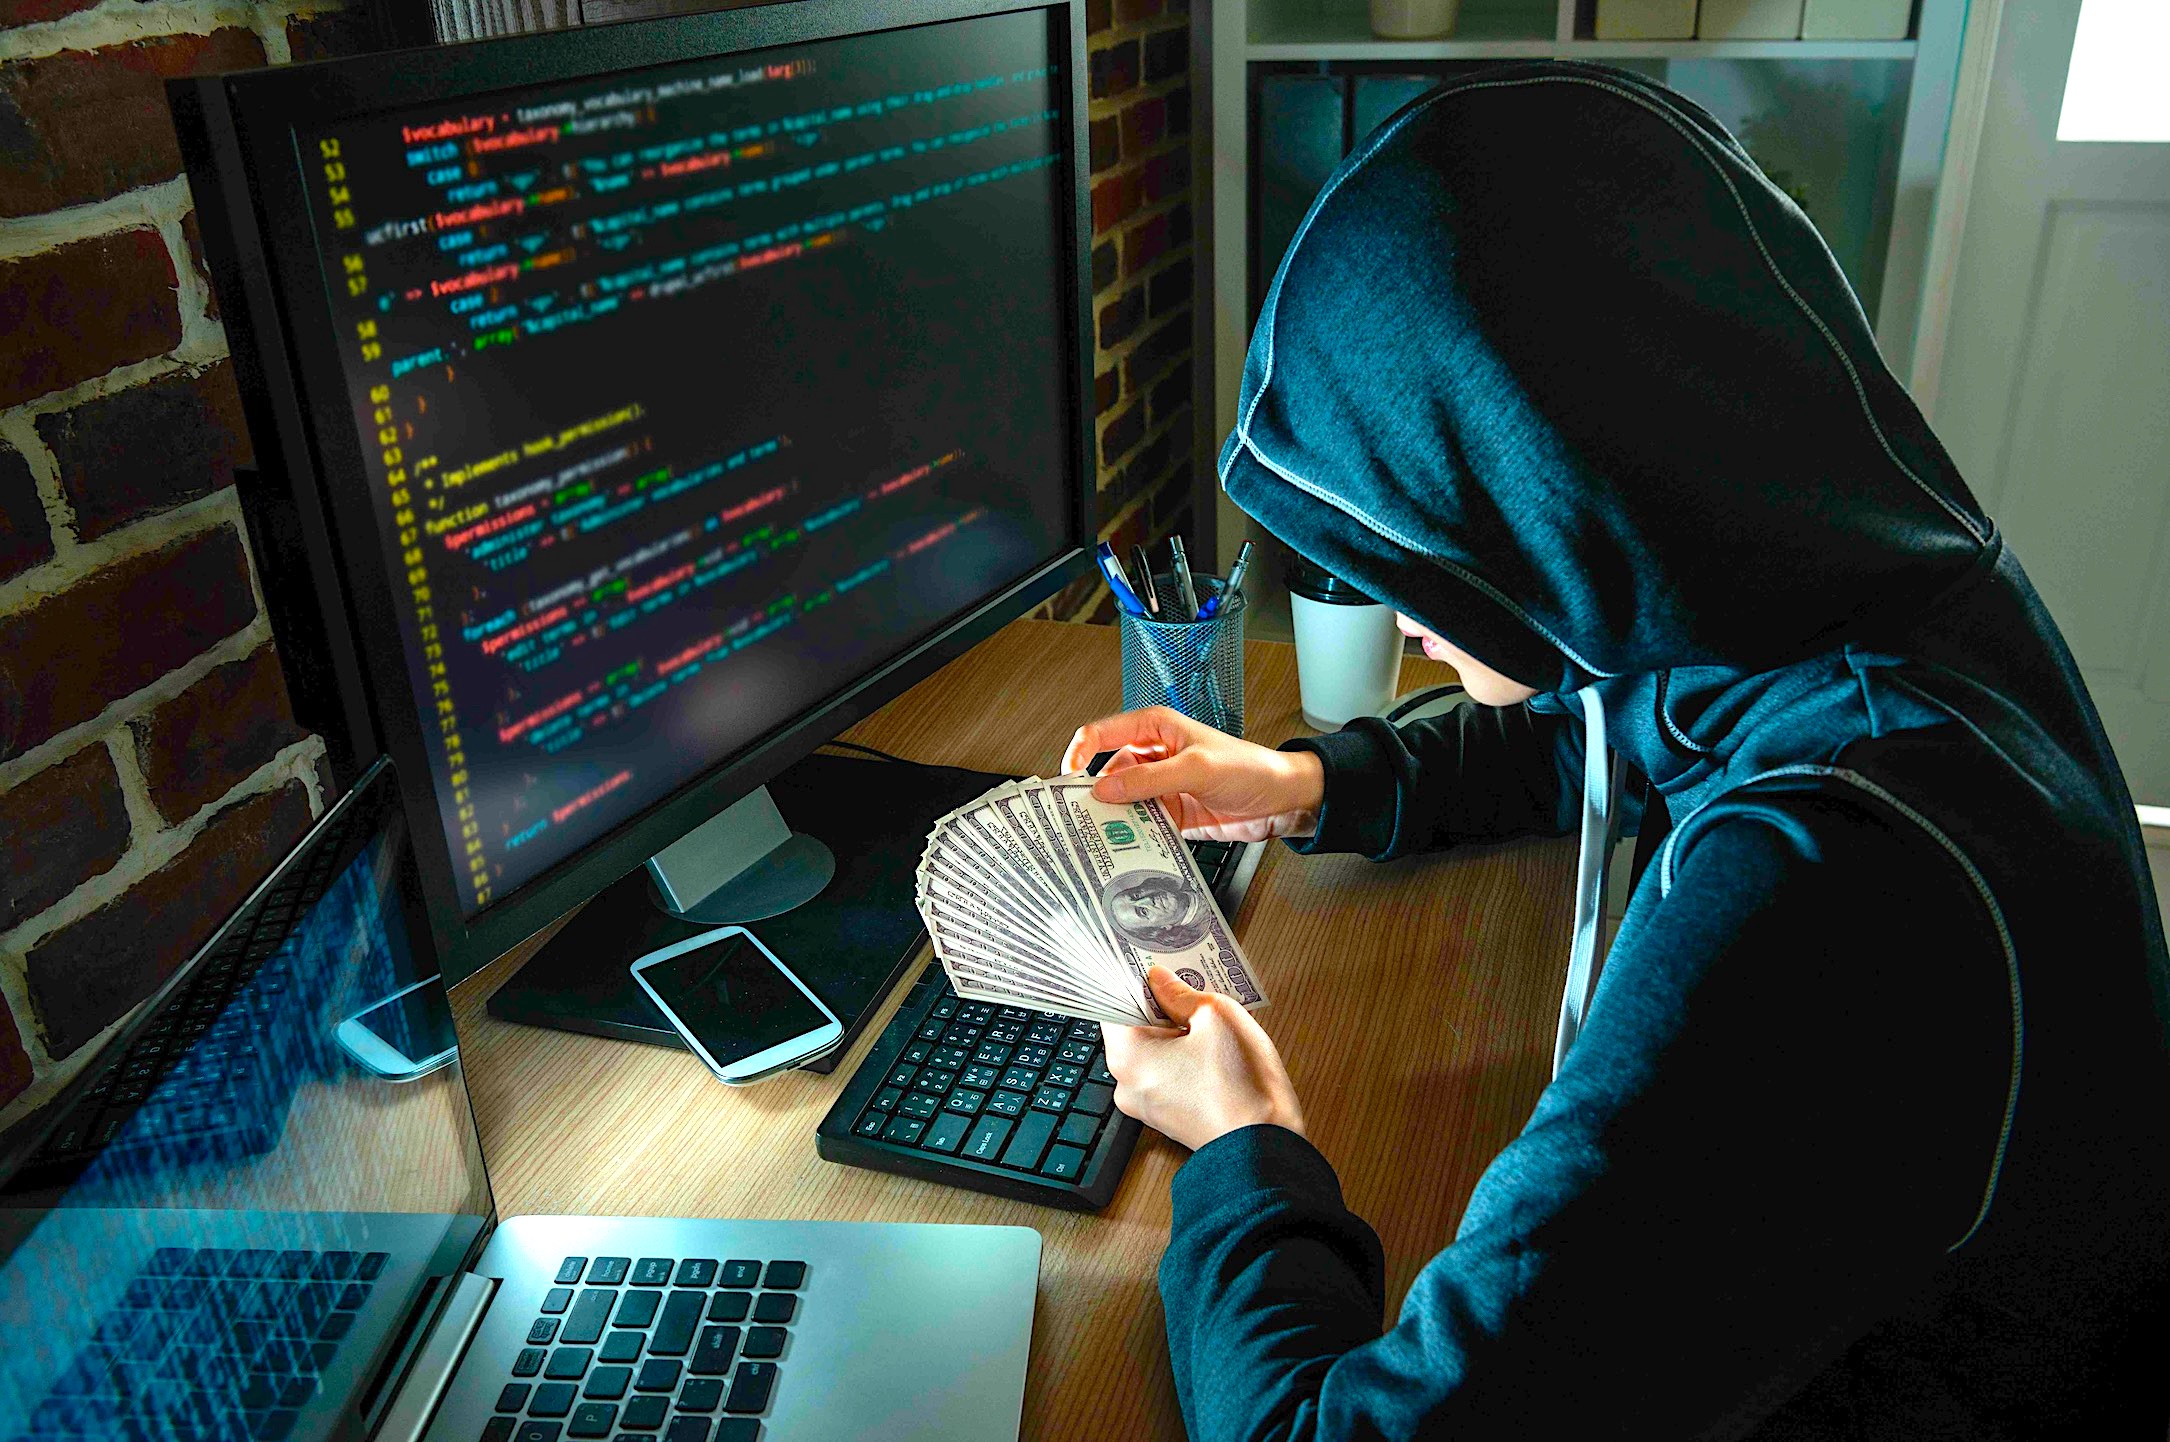 Chaos means cash for criminals and cybersecurity companies - SiliconANGLE